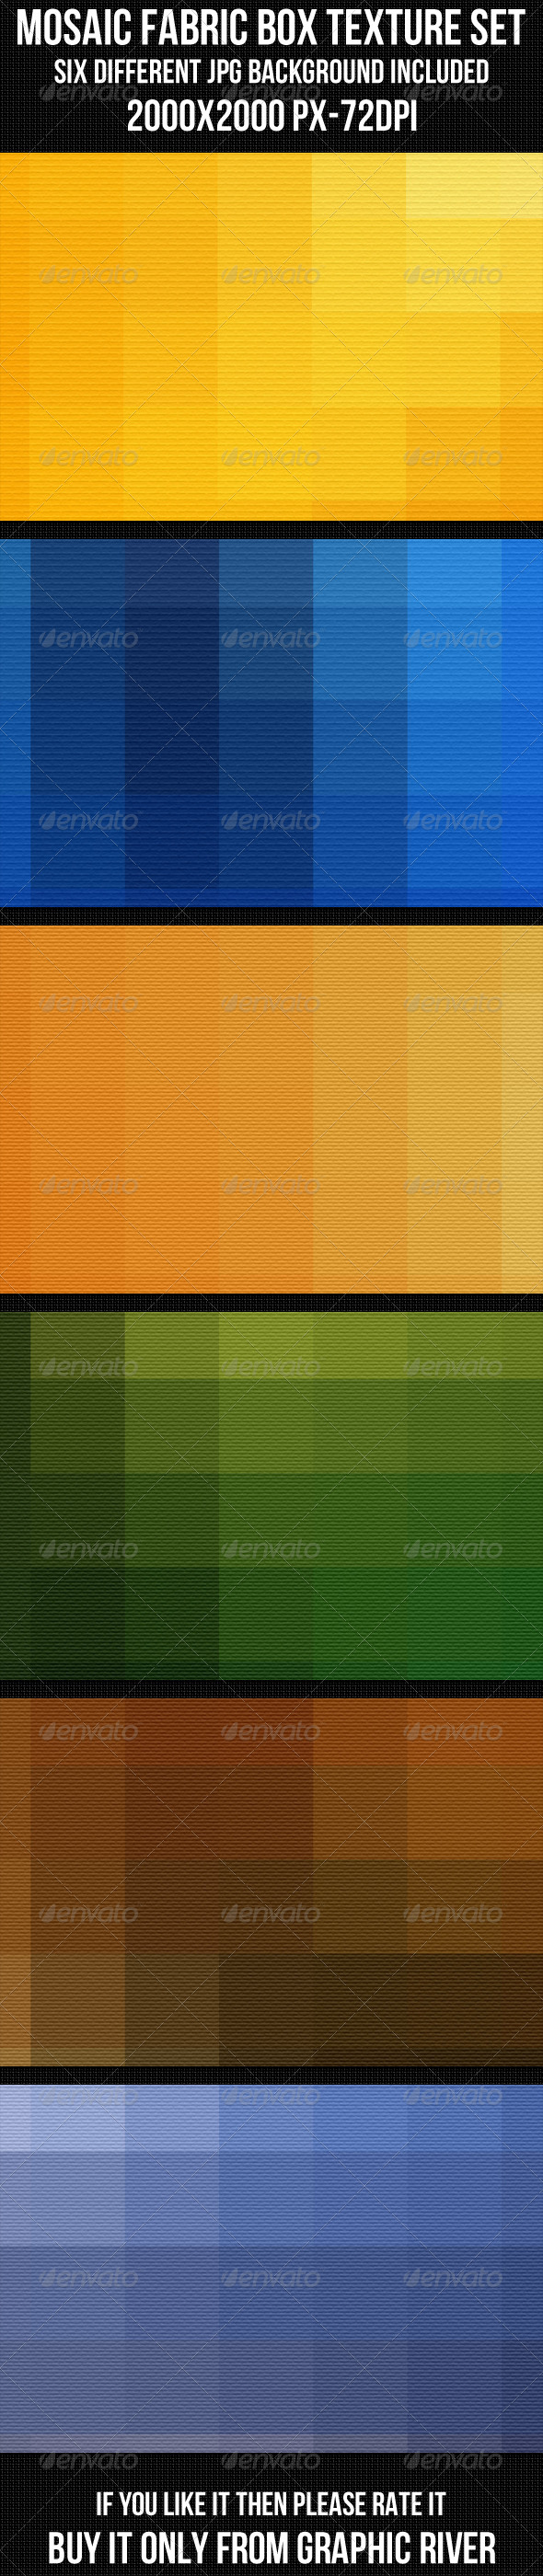 GraphicRiver Mosaic Fabric Box Texture Set 4344229